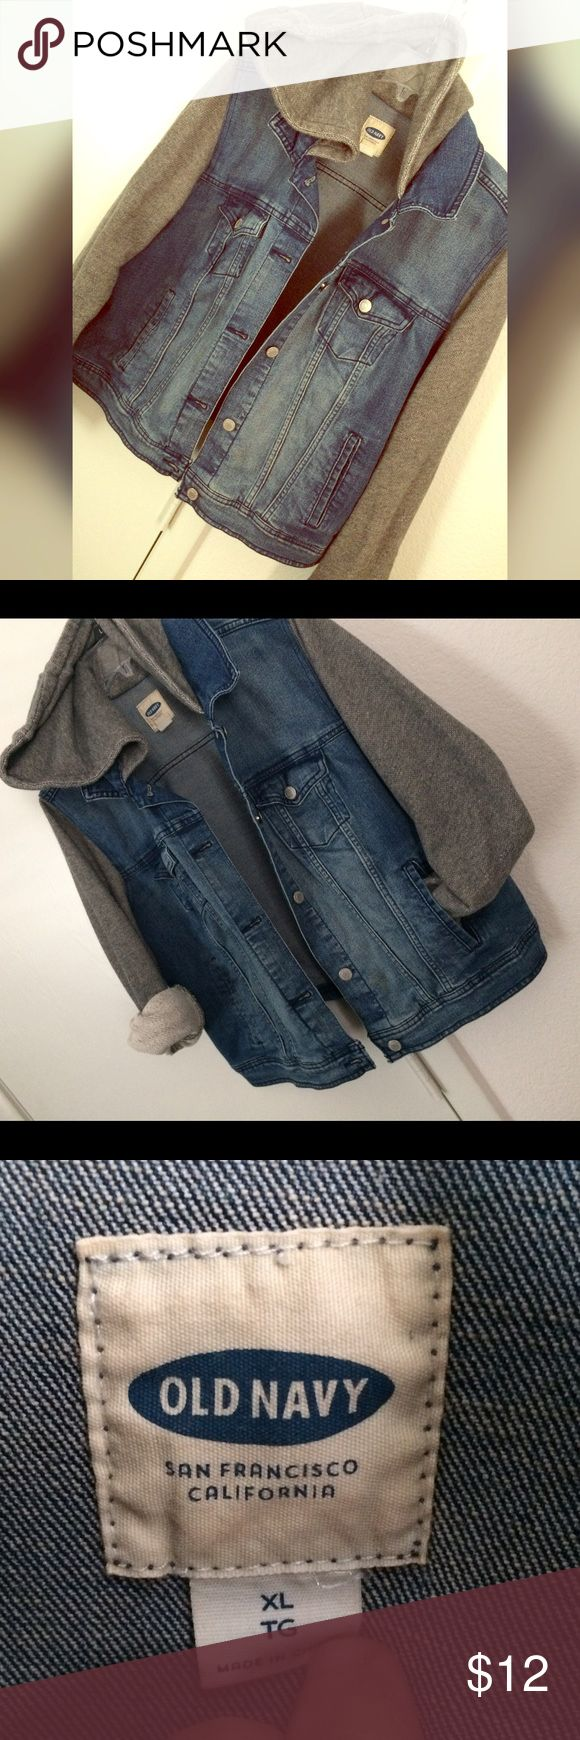 Hooded Jean Jacket Excellent condition, comfy and cute! Old Navy Jackets & Coats Jean Jackets